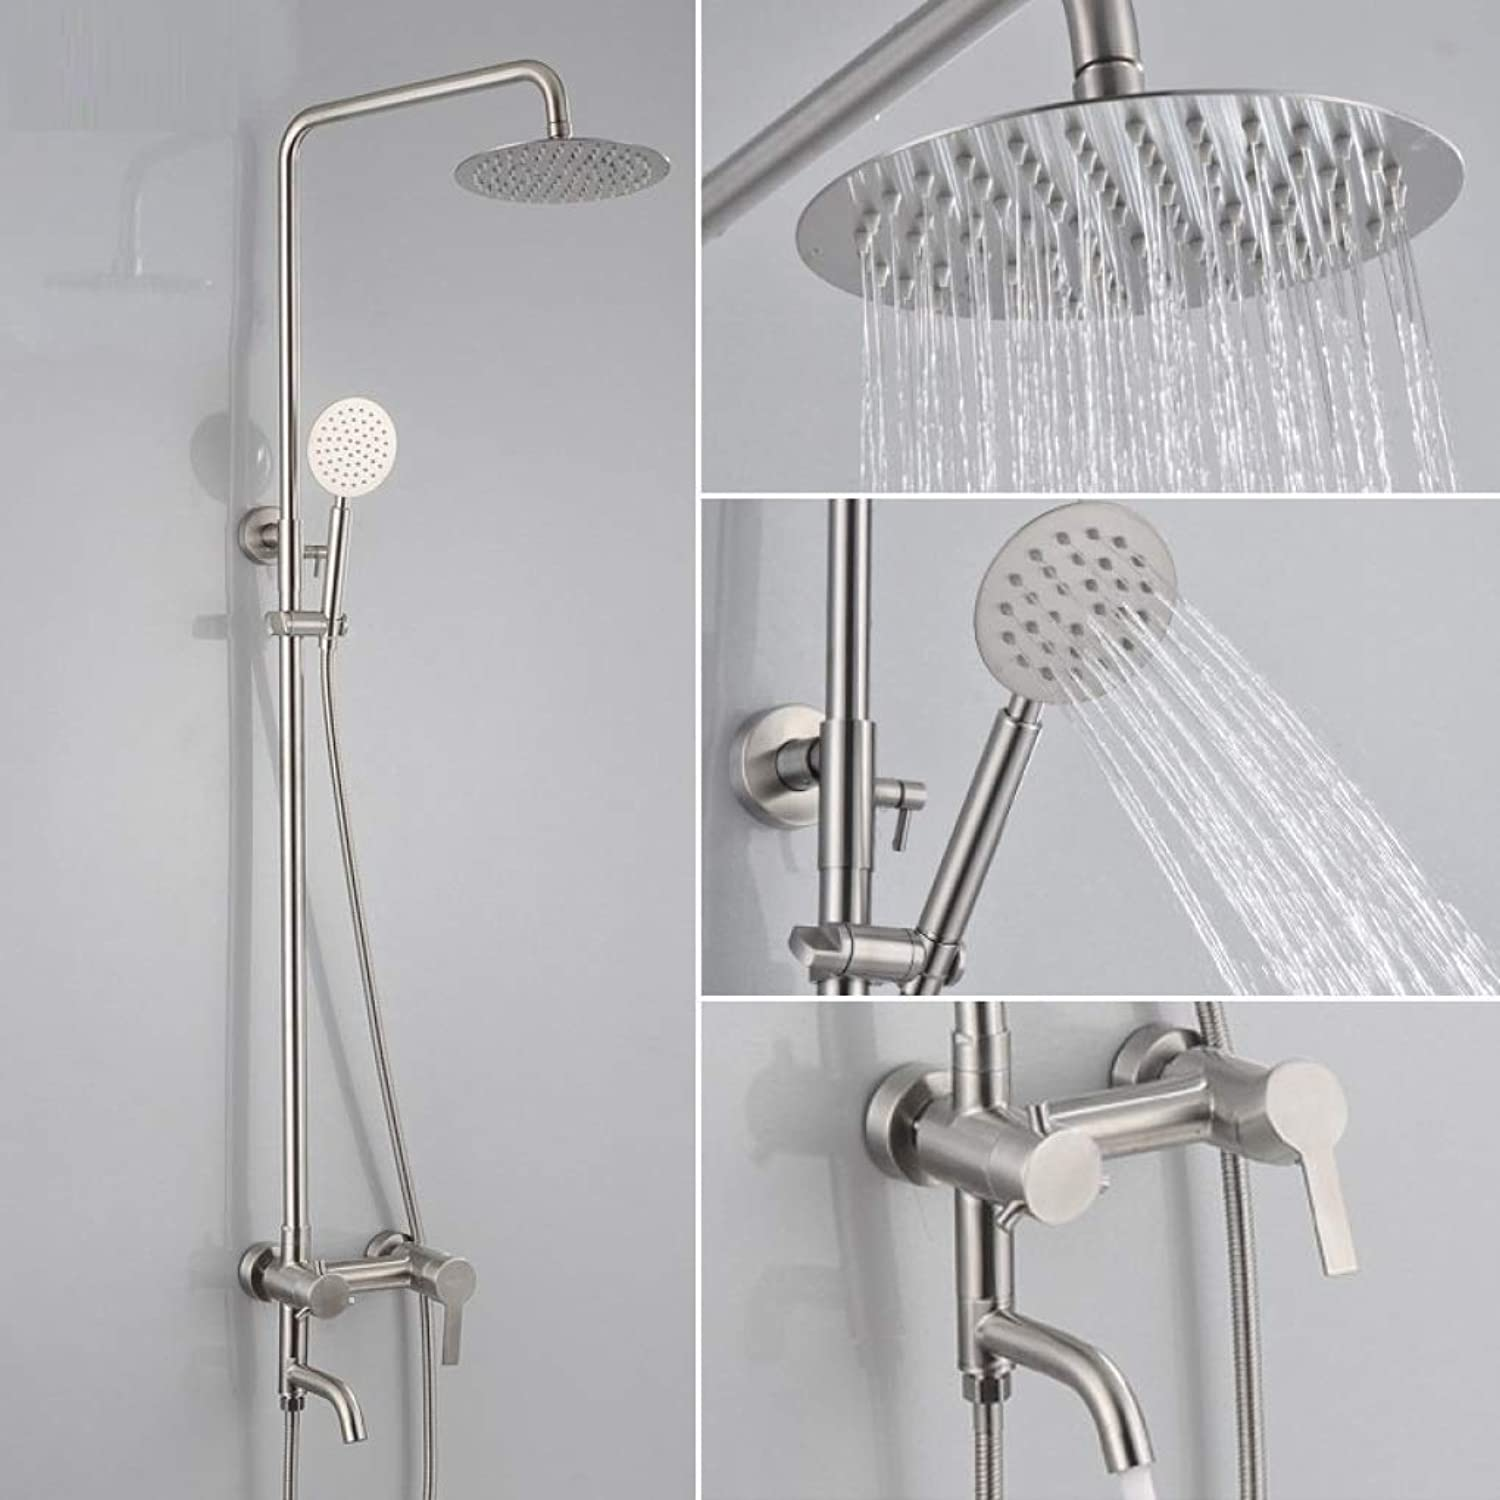 Shower Faucet, Holder for Luxury Bathroom Shower Set-Adjustable Shower-Wall Mounted Rainfall Shower Head Systems-Stainless steel shower,B